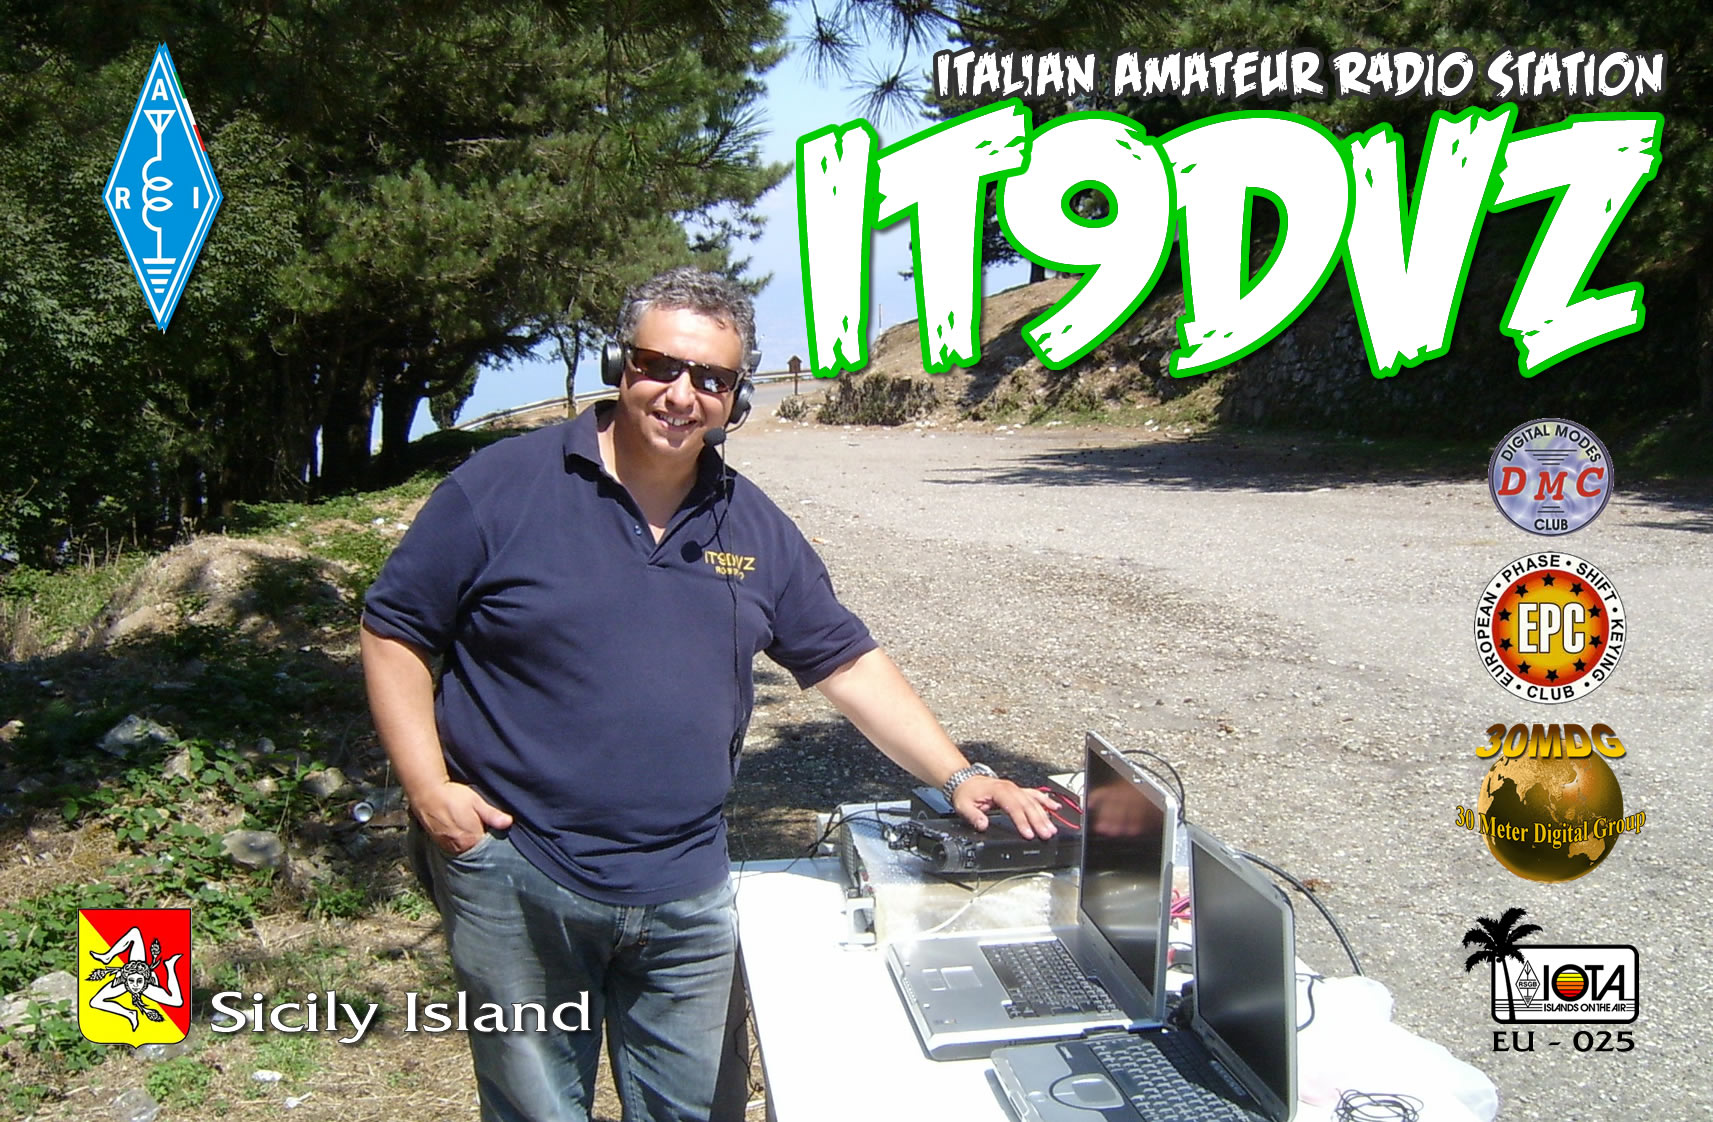 QSL image for IT9DVZ